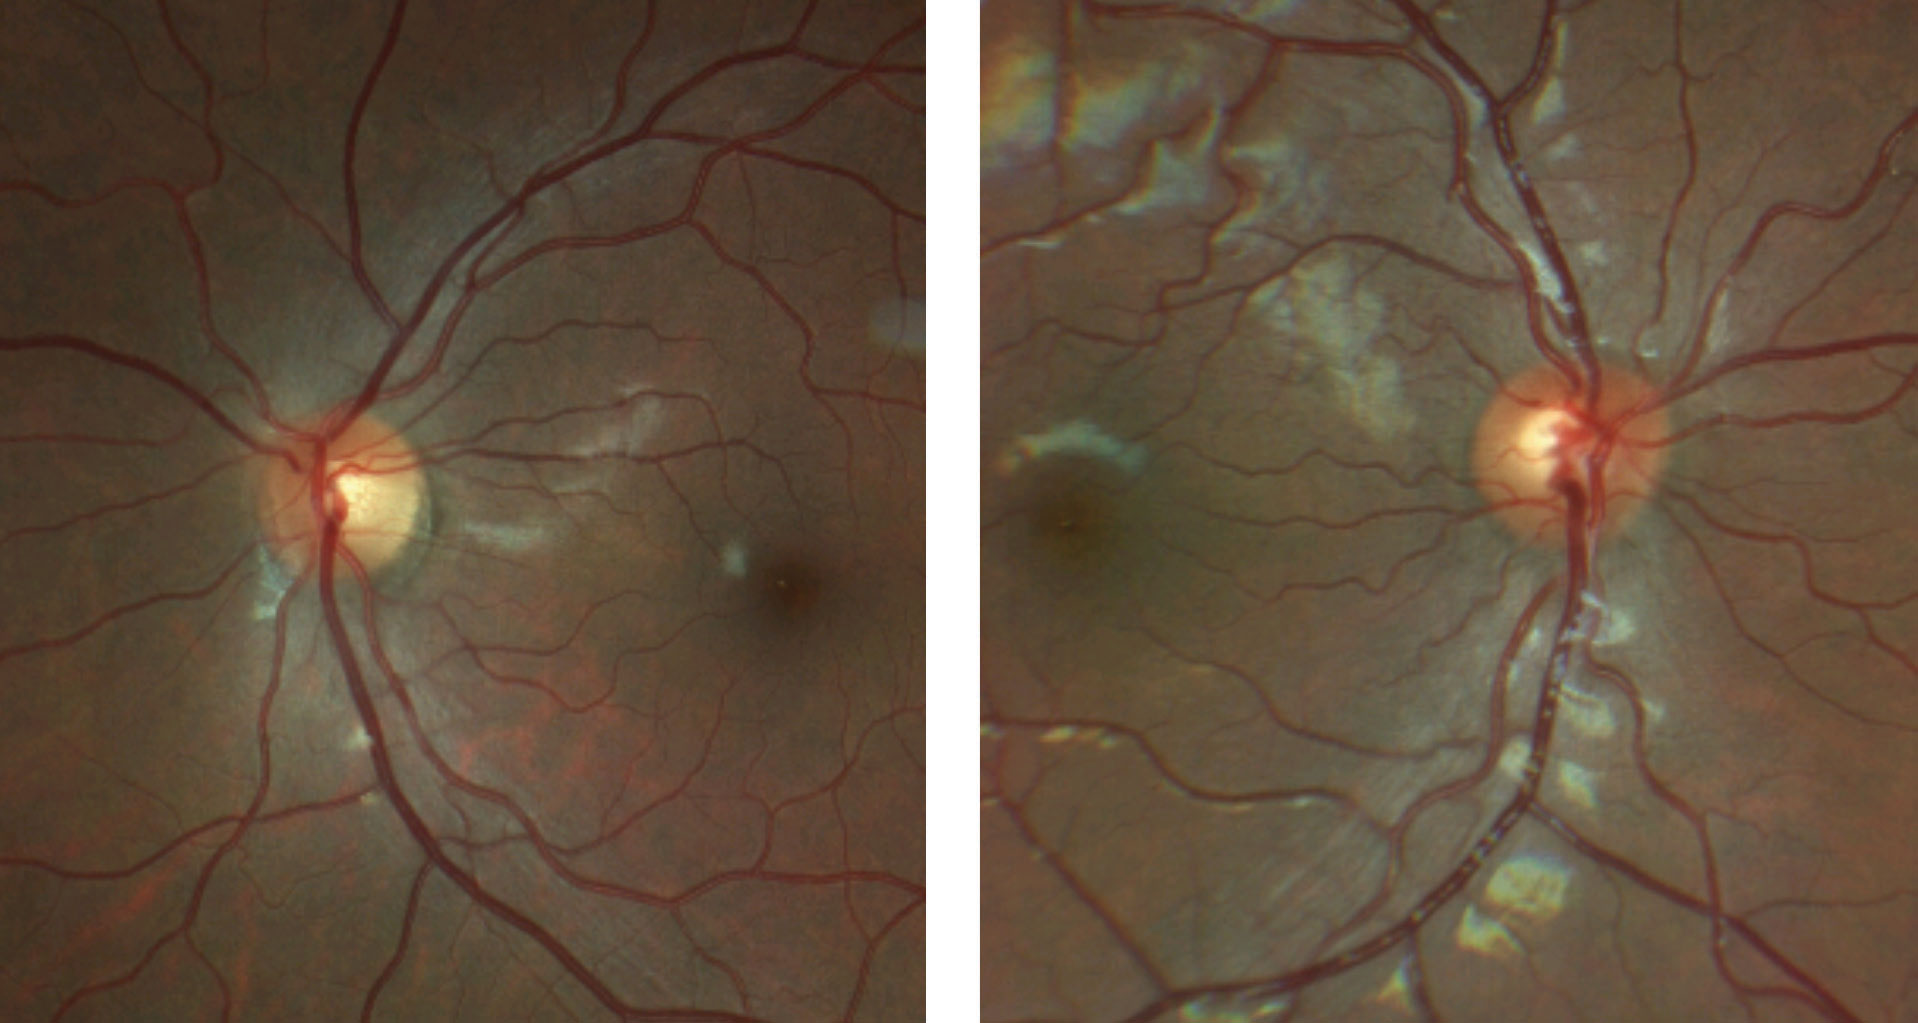 This patient's fundus photo suggests a pale temporal neuroretinal rim in the left eye.